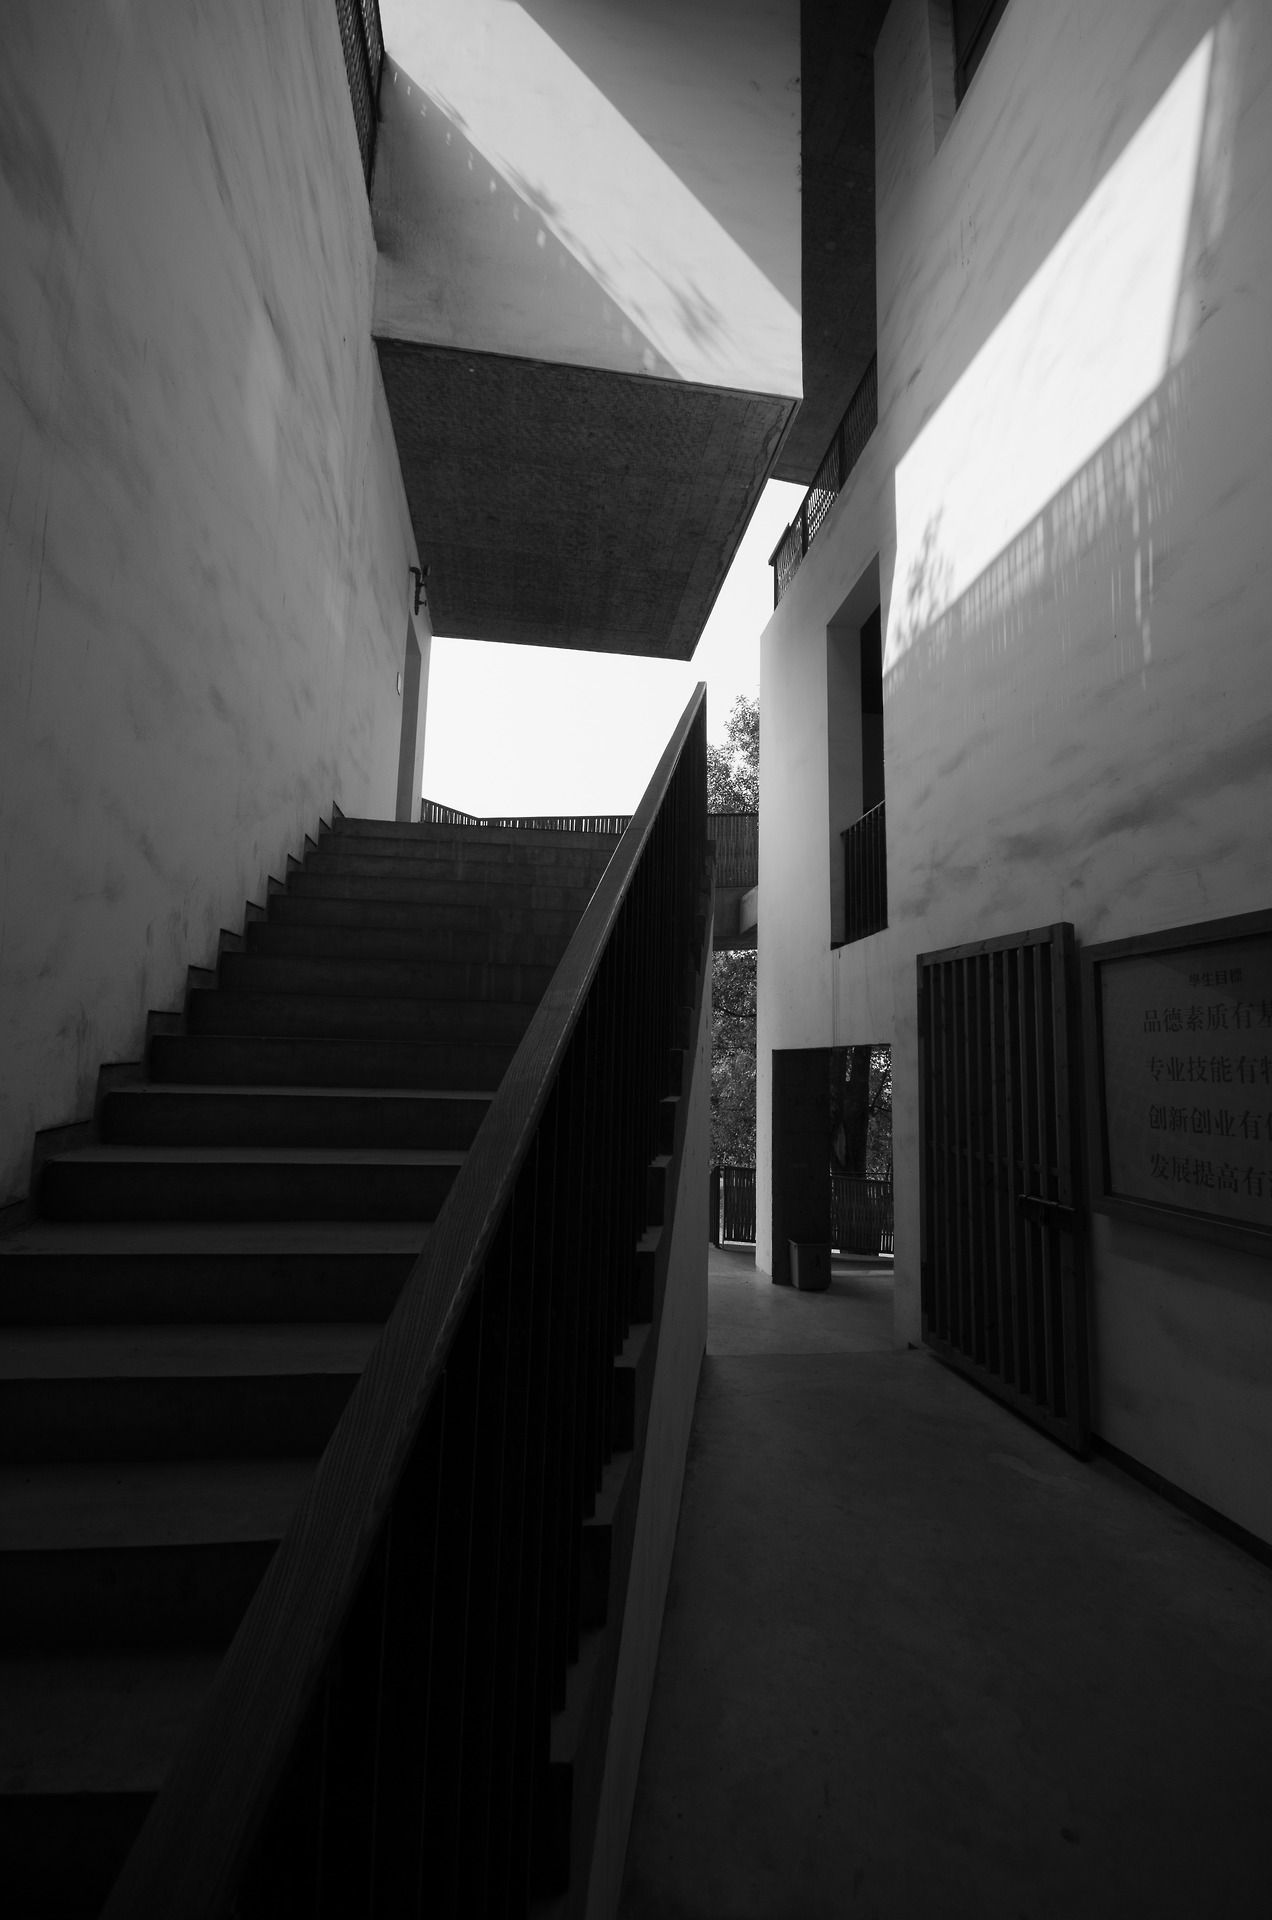 New Academy Of Art Wang Shu Hangzhou China Interior Architecture Commercial Interiors Architecture